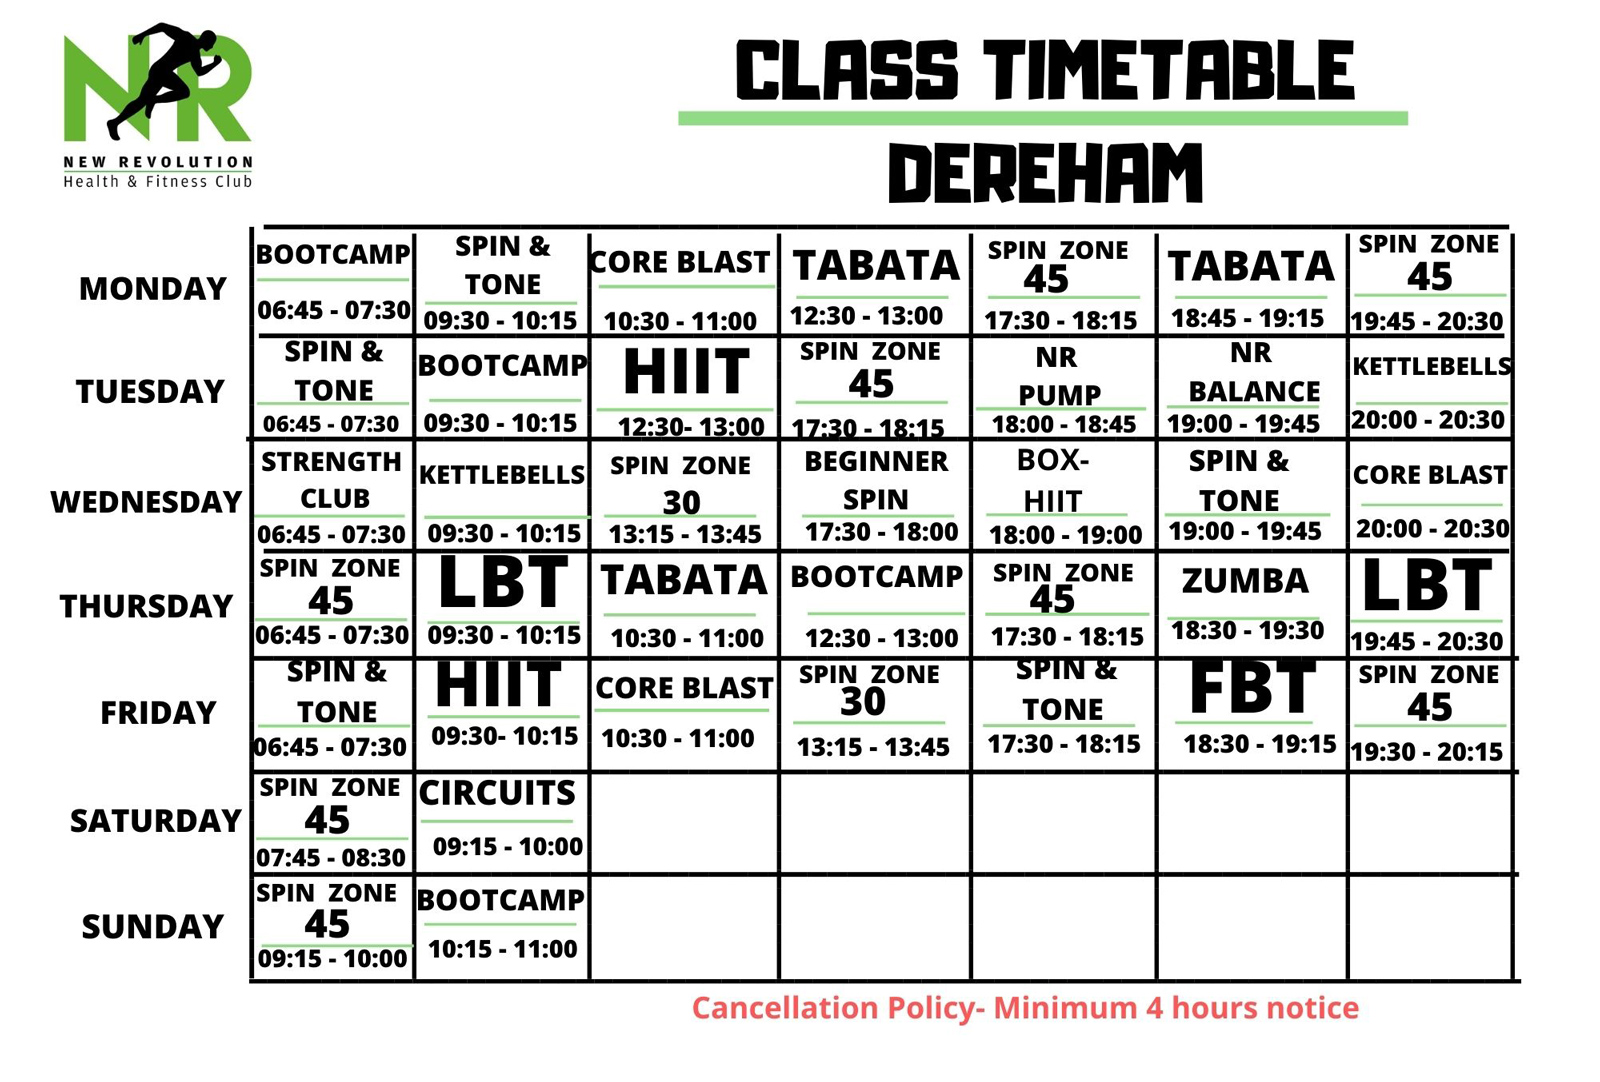 NEW Dereham Timetable - October 2020